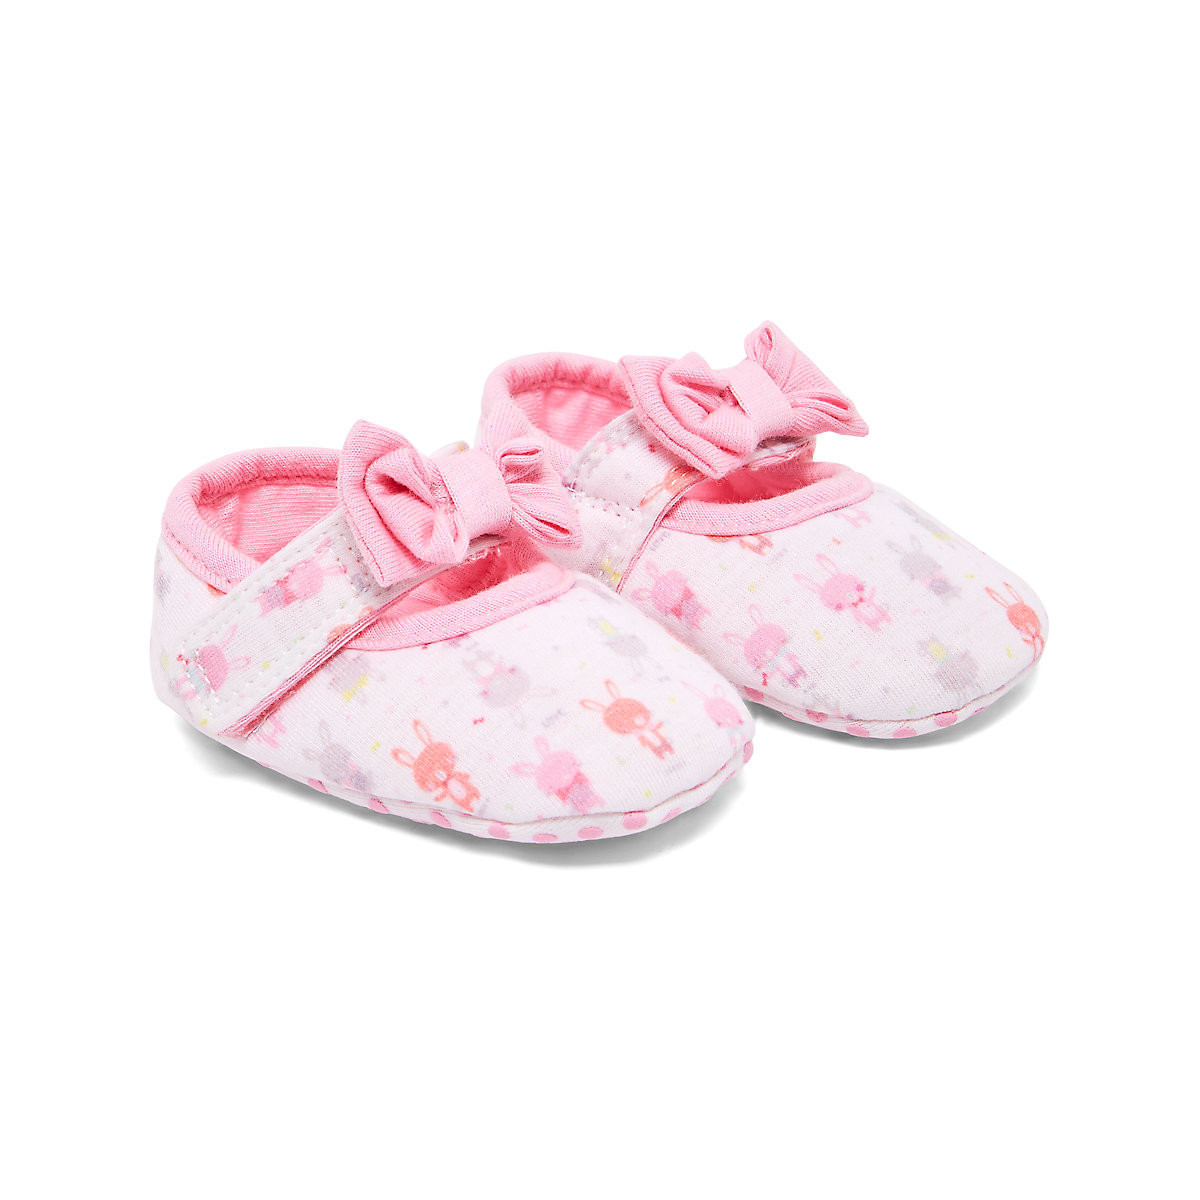 Mothercare Bunny Mary Jane Shoes - Reviews